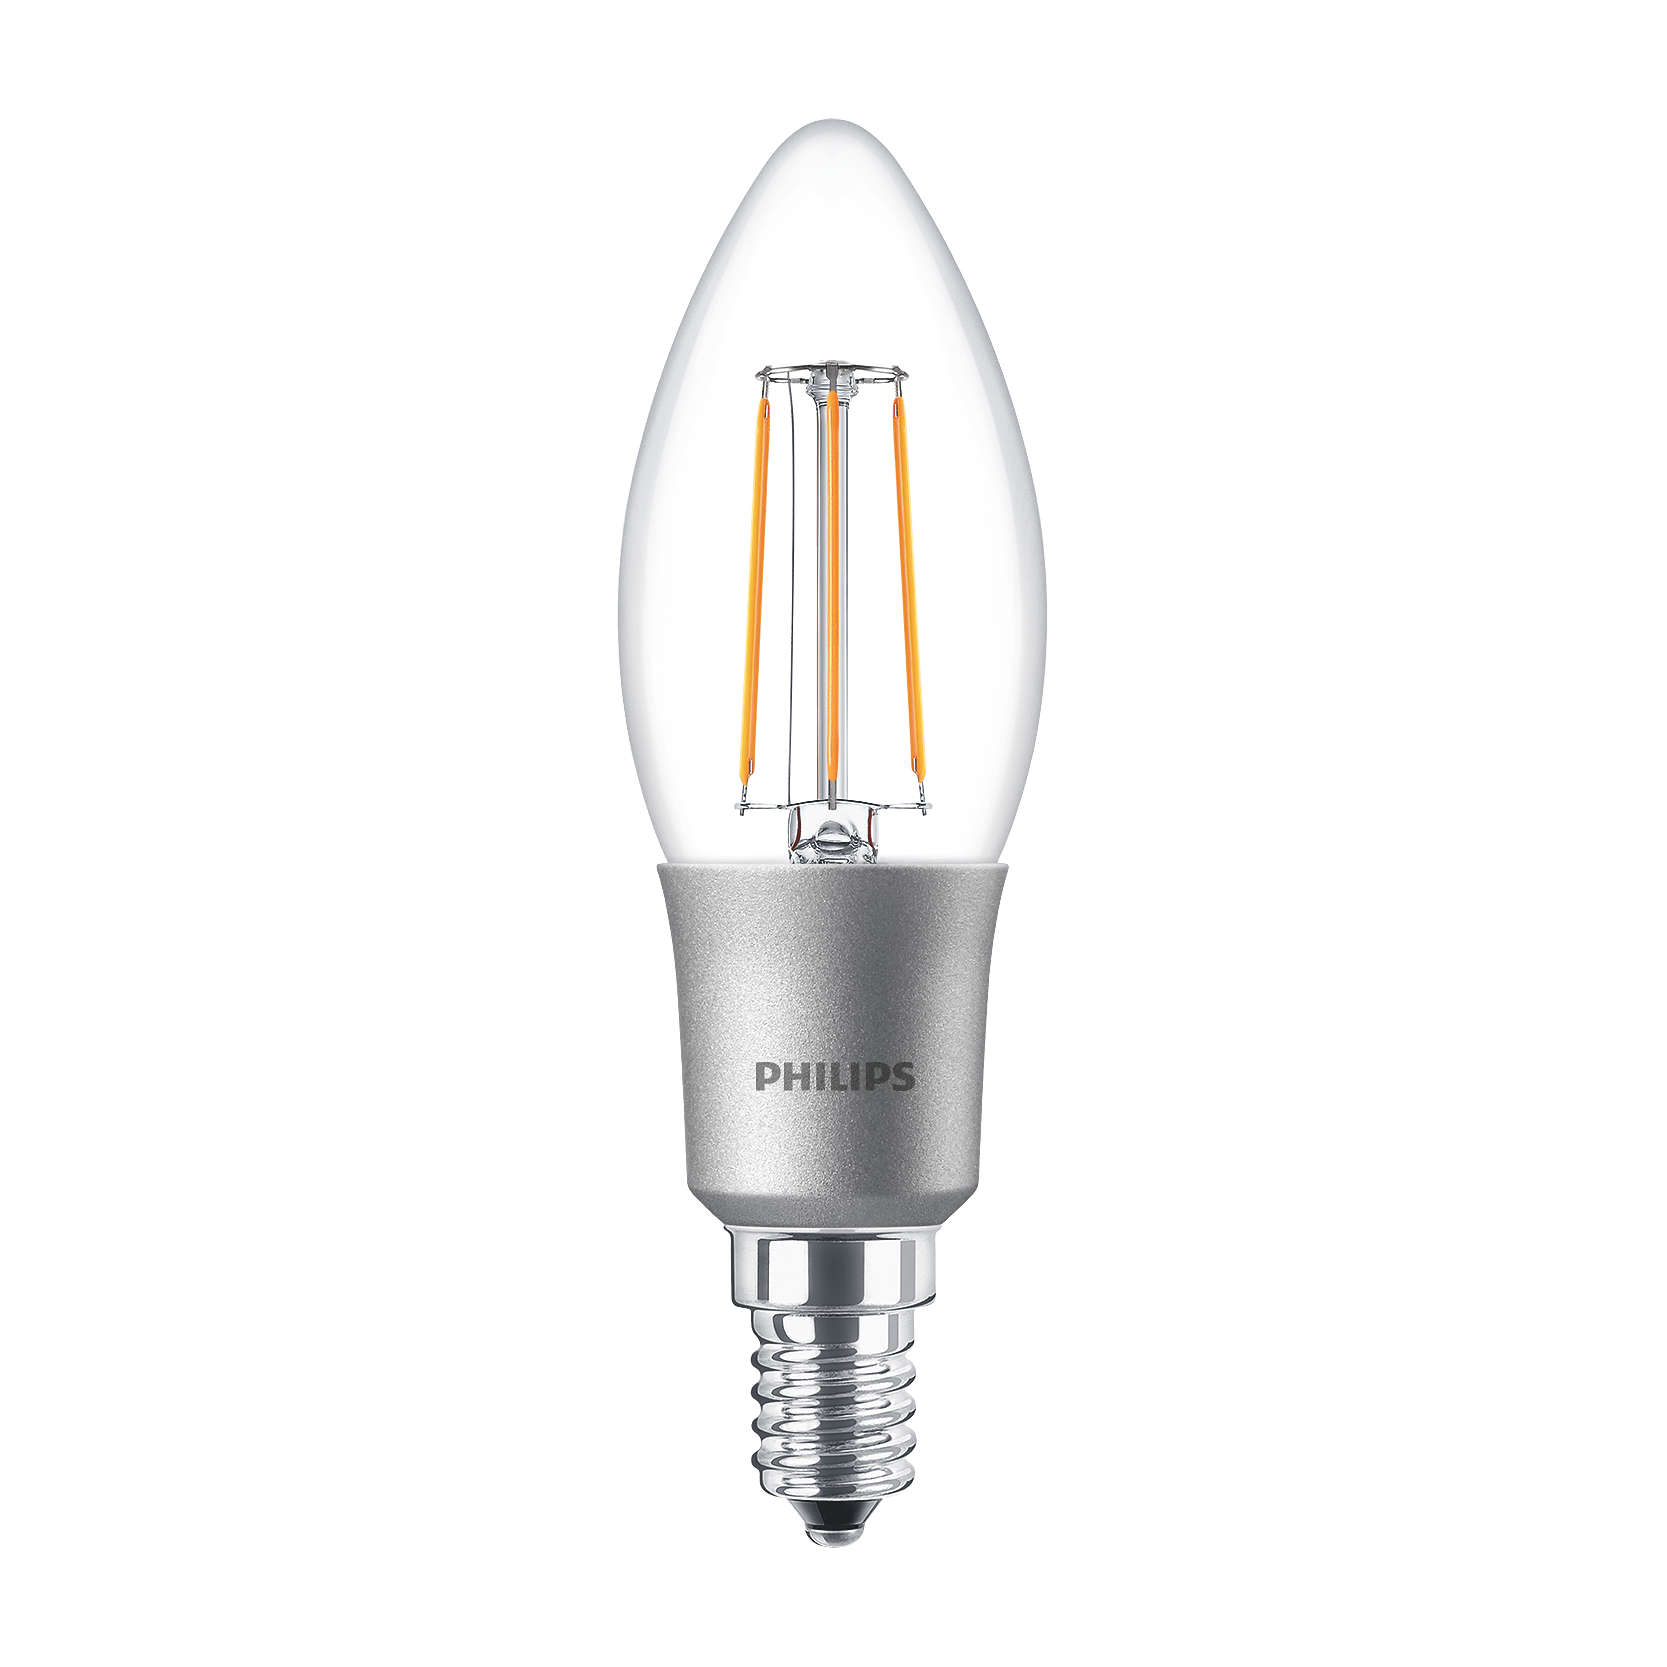 philips led filament candle bulb clear b35 e14 4 5w 2700k. Black Bedroom Furniture Sets. Home Design Ideas